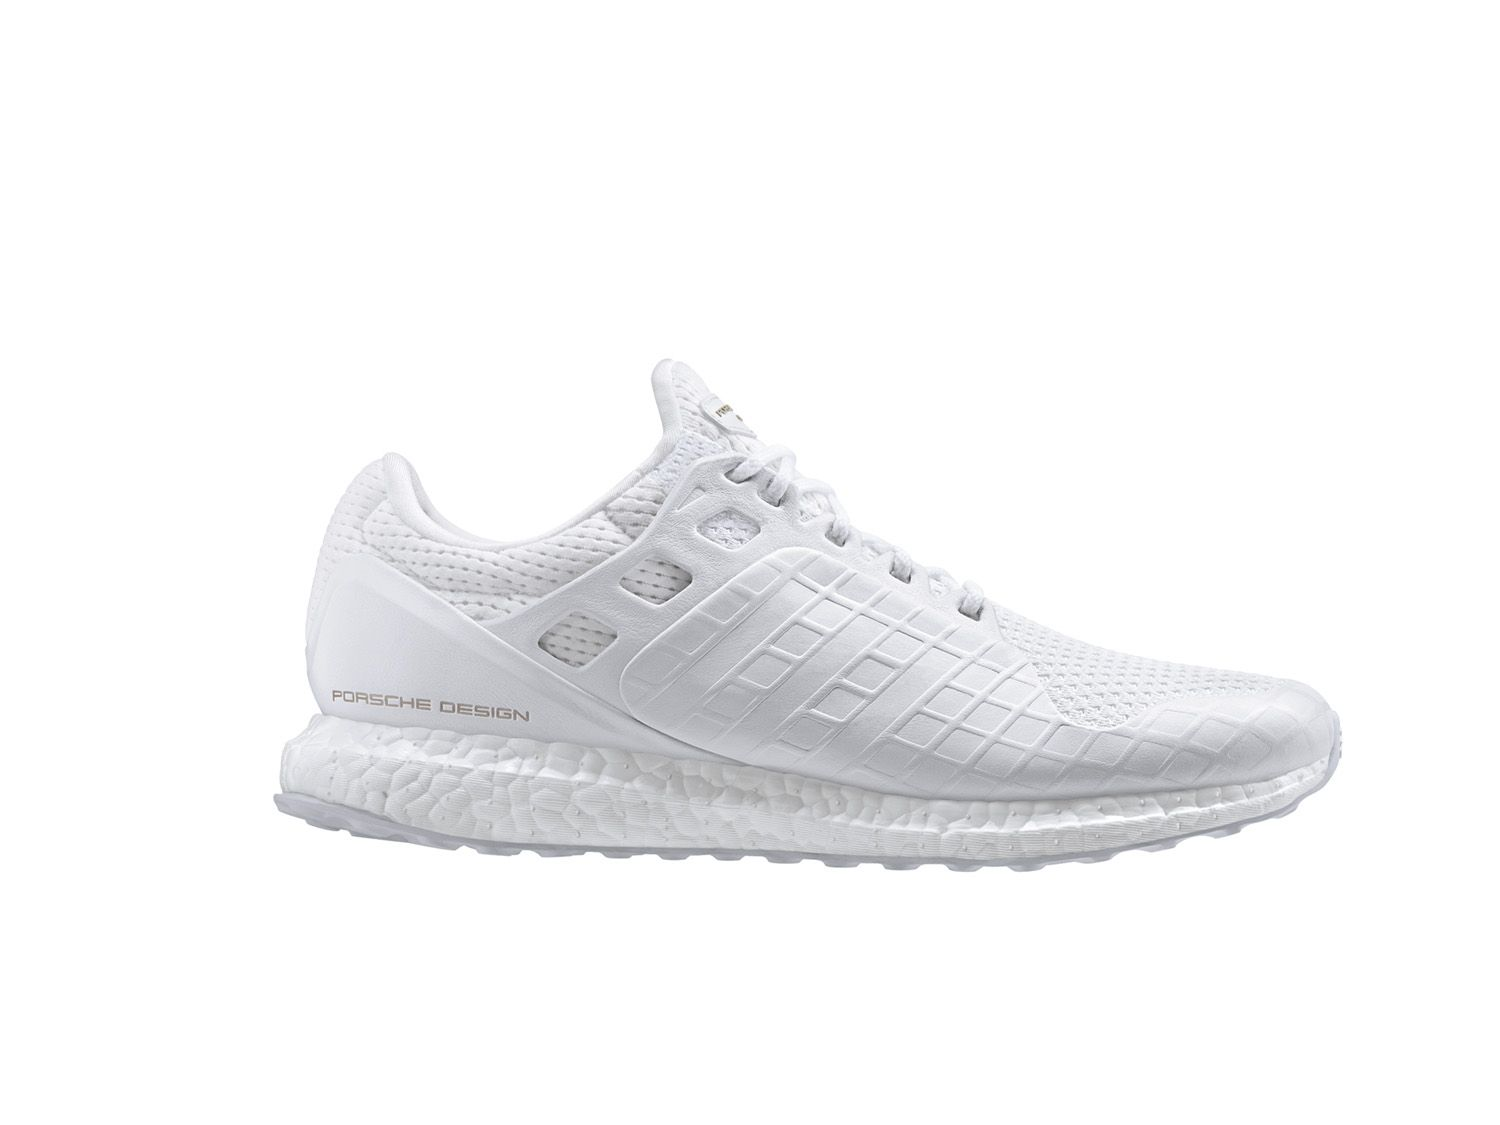 san francisco 8ff9d b5df0 The Porsche Design Sport by Adidas Ultra Boost releases ...